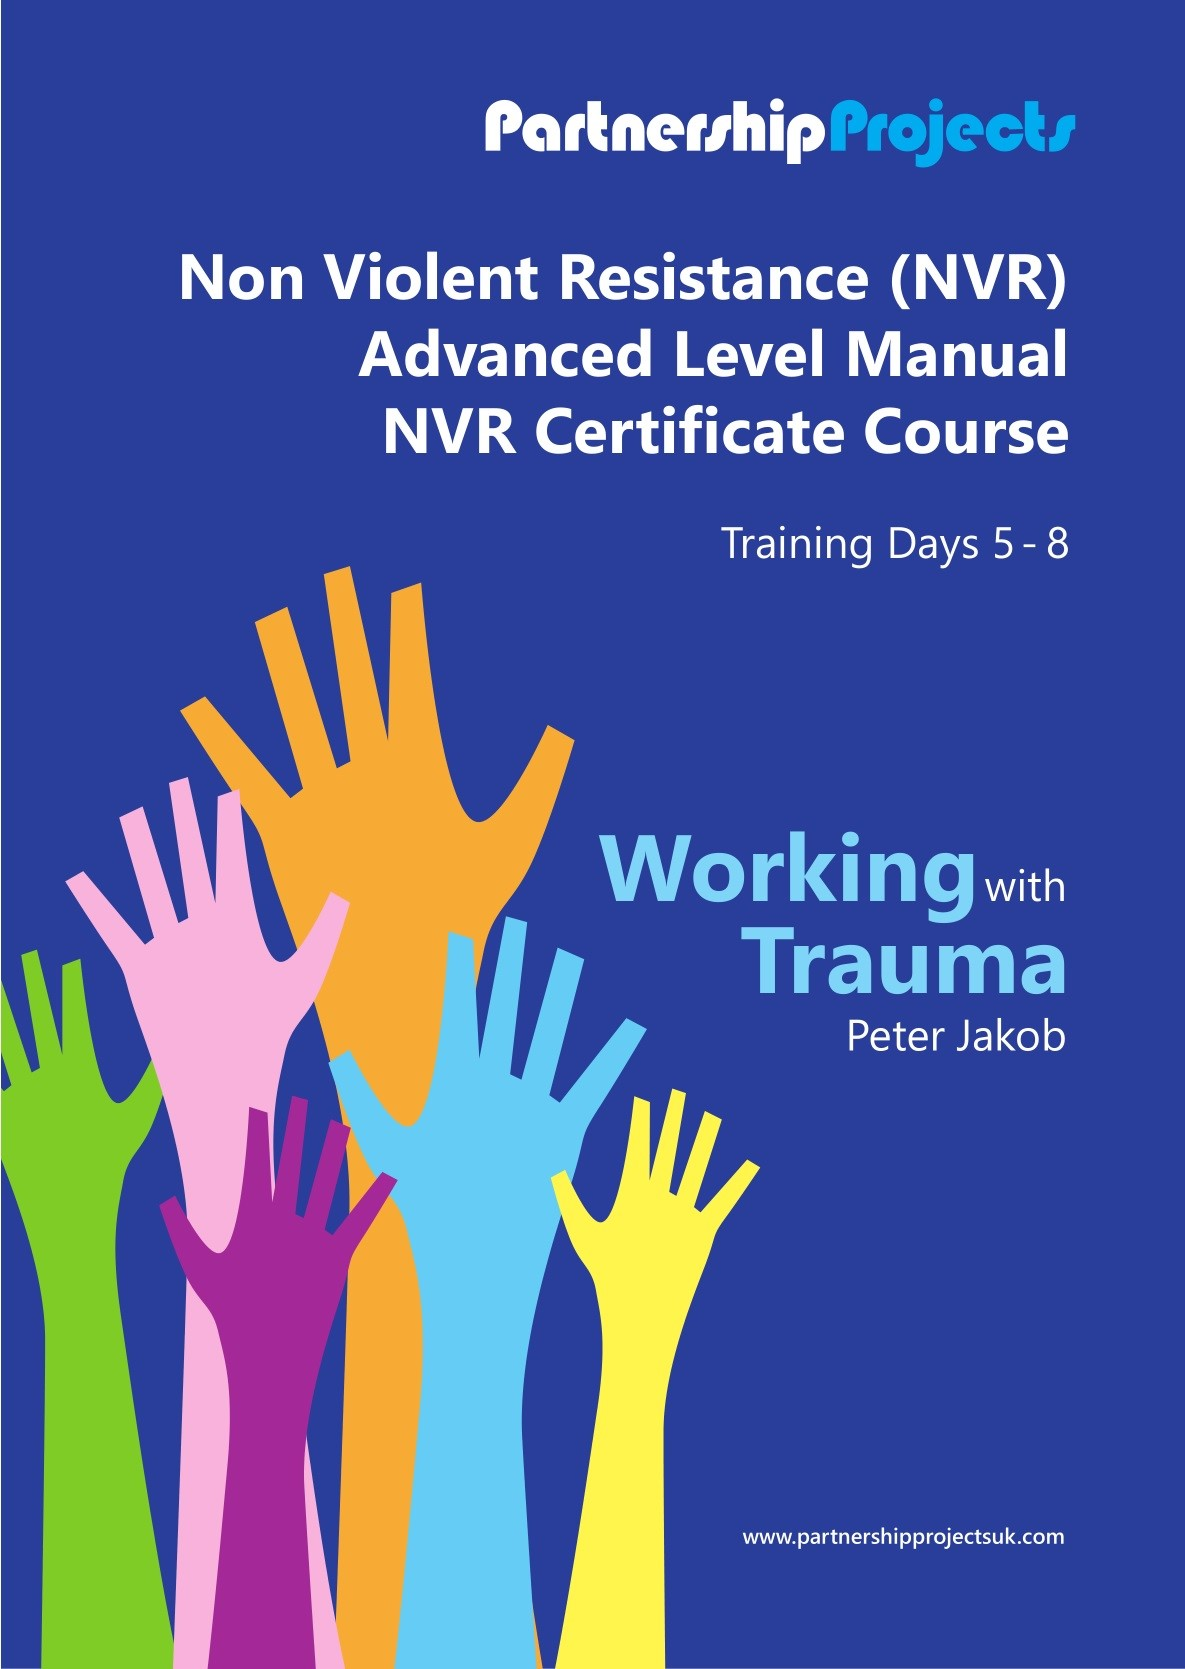 Non Violent Resistance (NVR), Advanced Level Manual, NVR Certificate Course, Training Days 5 - 8: Working With Trauma